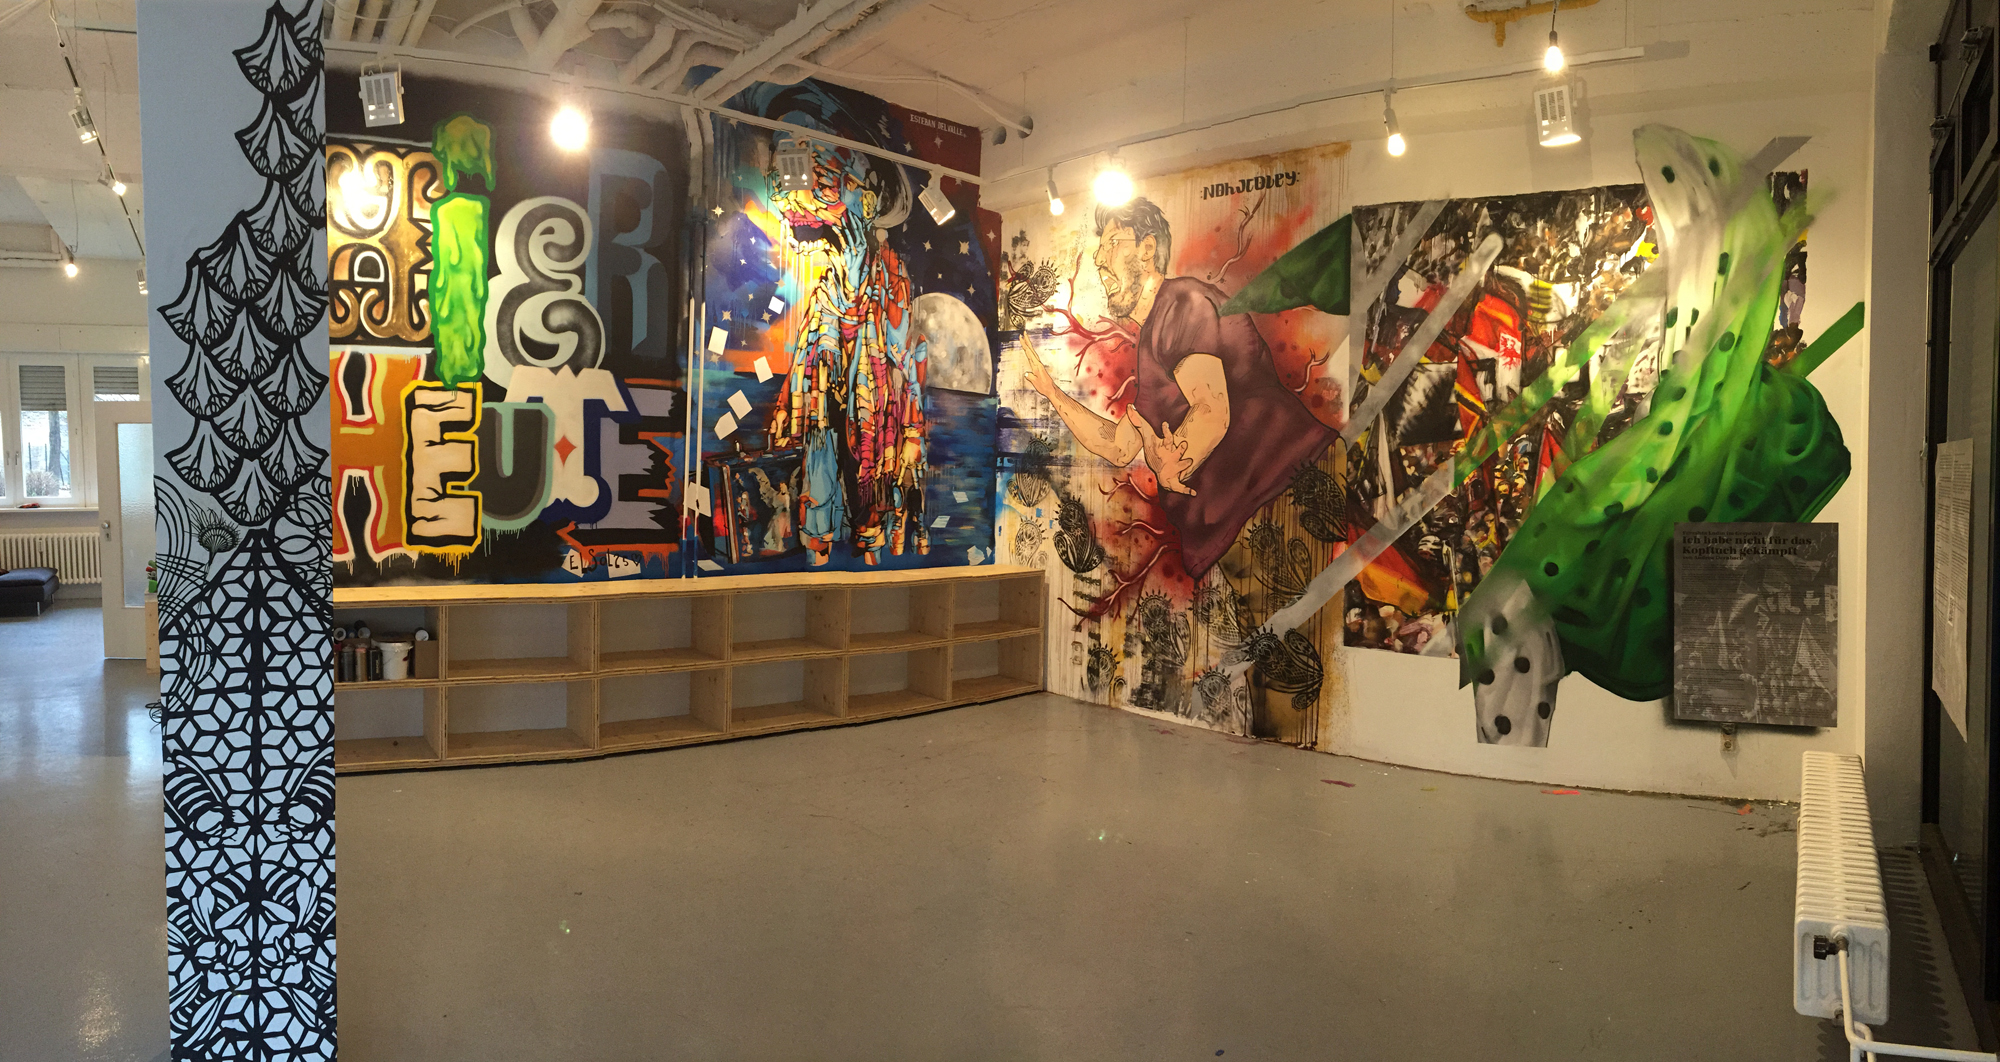 brooklyn-street-art-swoon-el-sol-25-esteban-del-valle-nohj-coley-gaia-jaime-rojo-pop-up-un-pm7-berlin-03-15-large